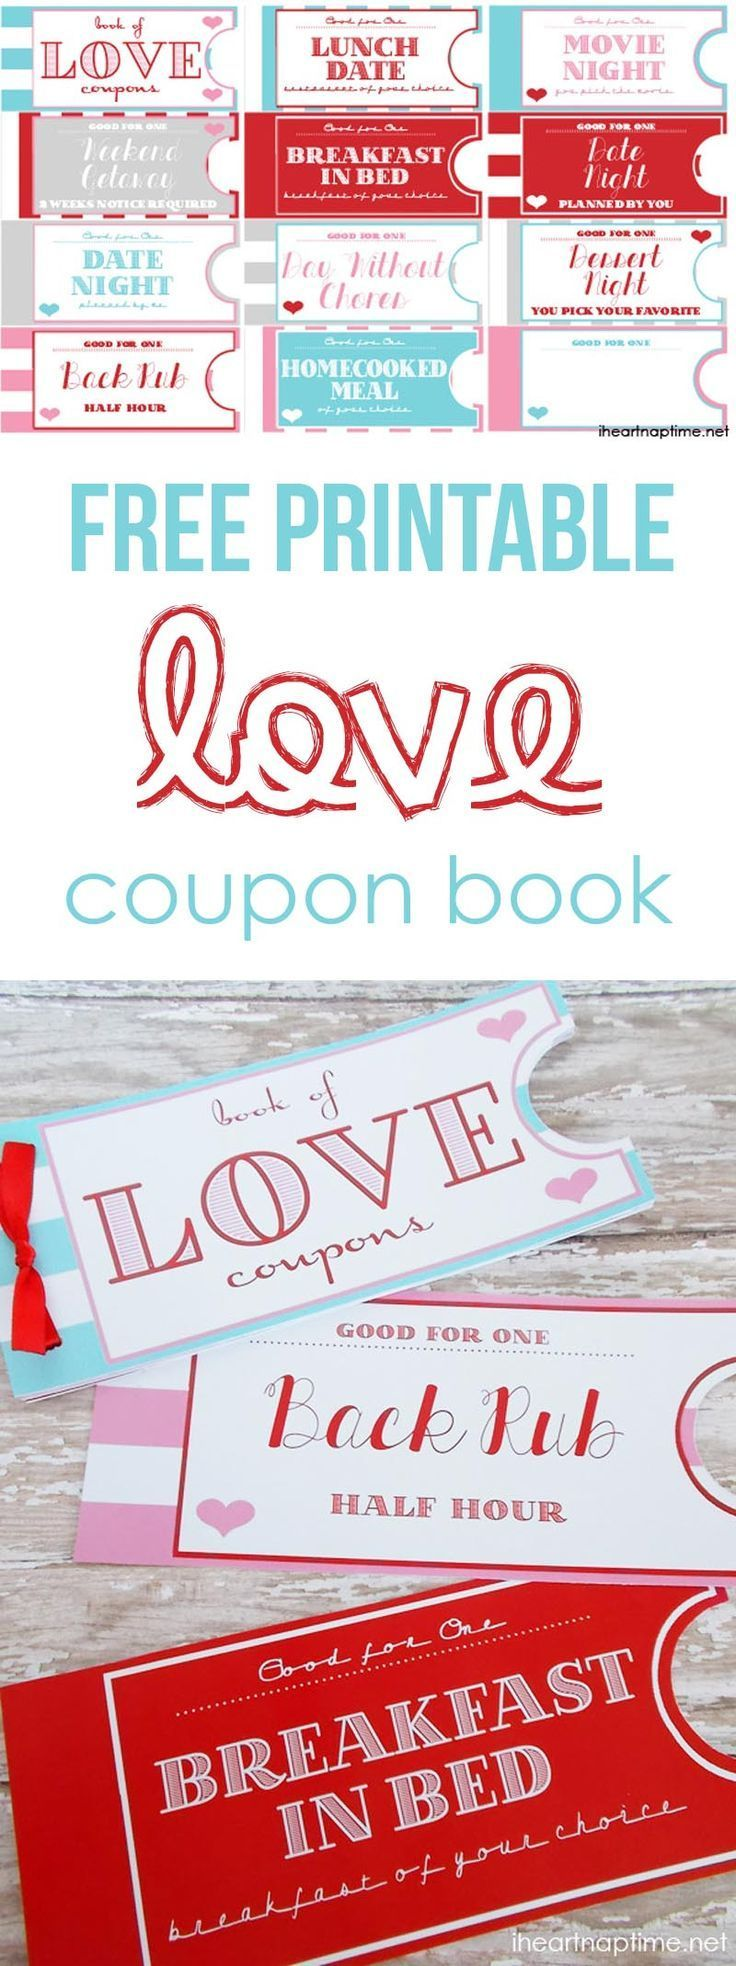 Spearmint love coupon code